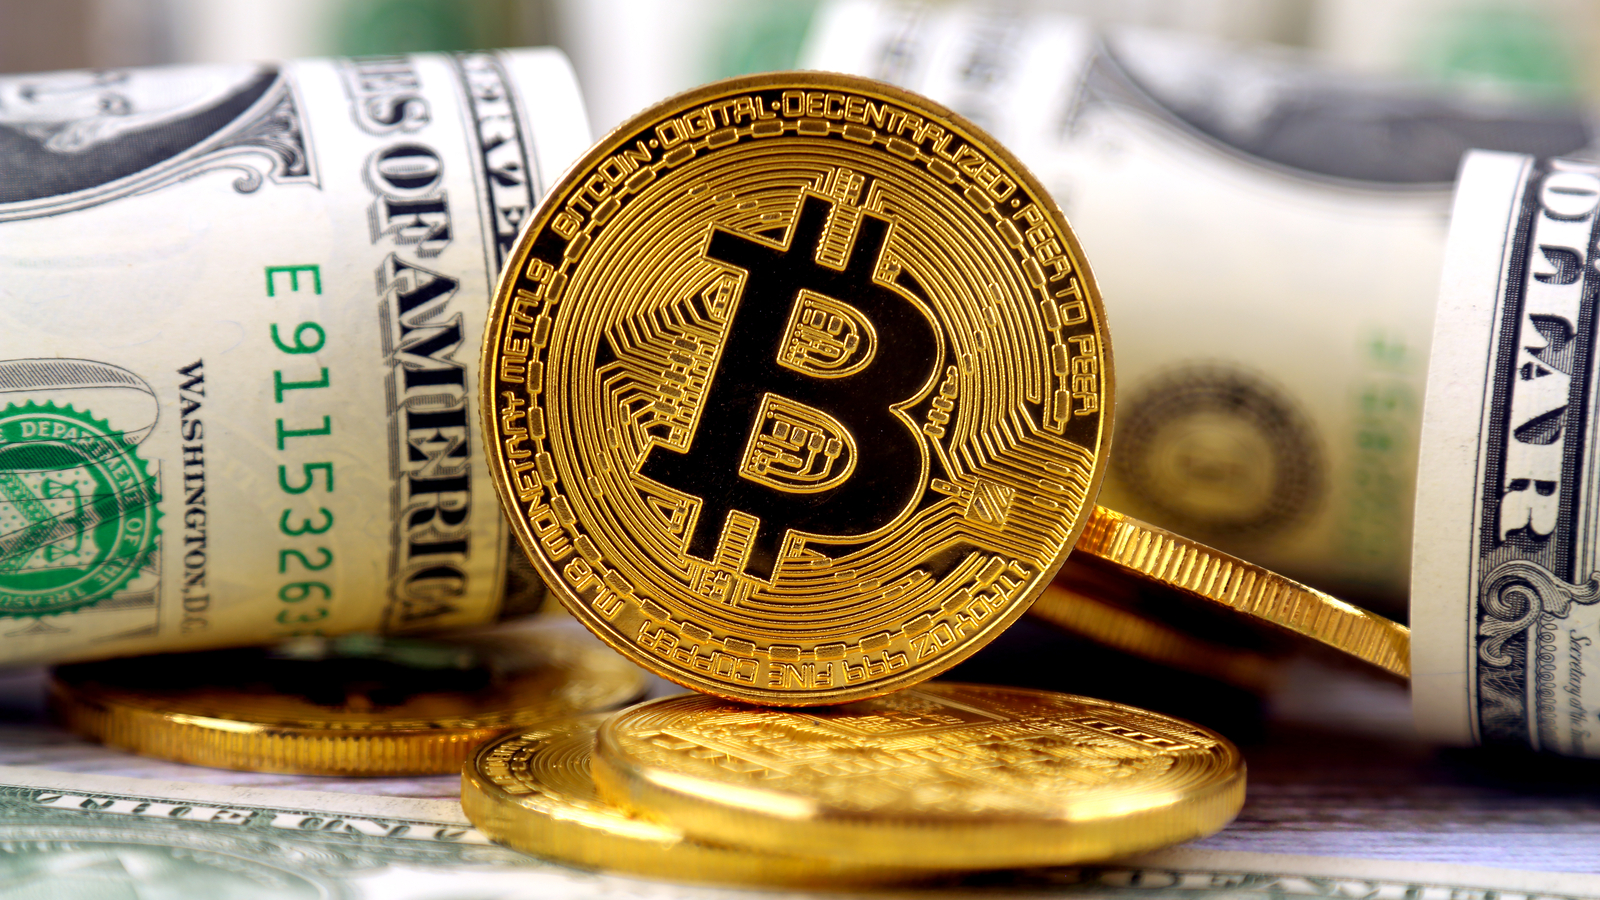 Physical version of Bitcoin (new virtual money) and banknotes of one dollar